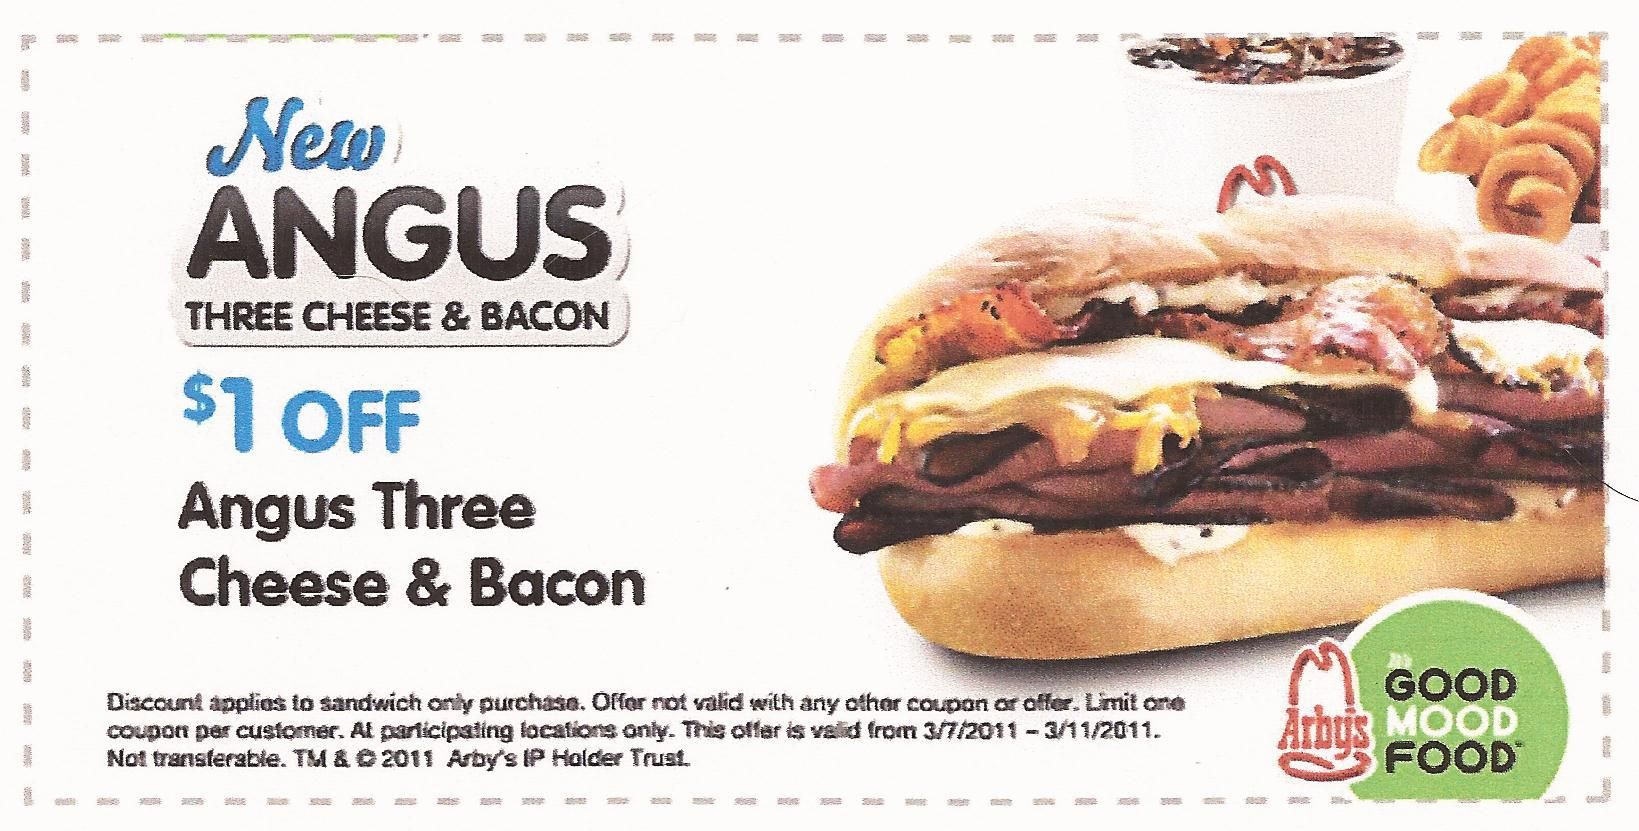 arbys coupons for reuben sandwich